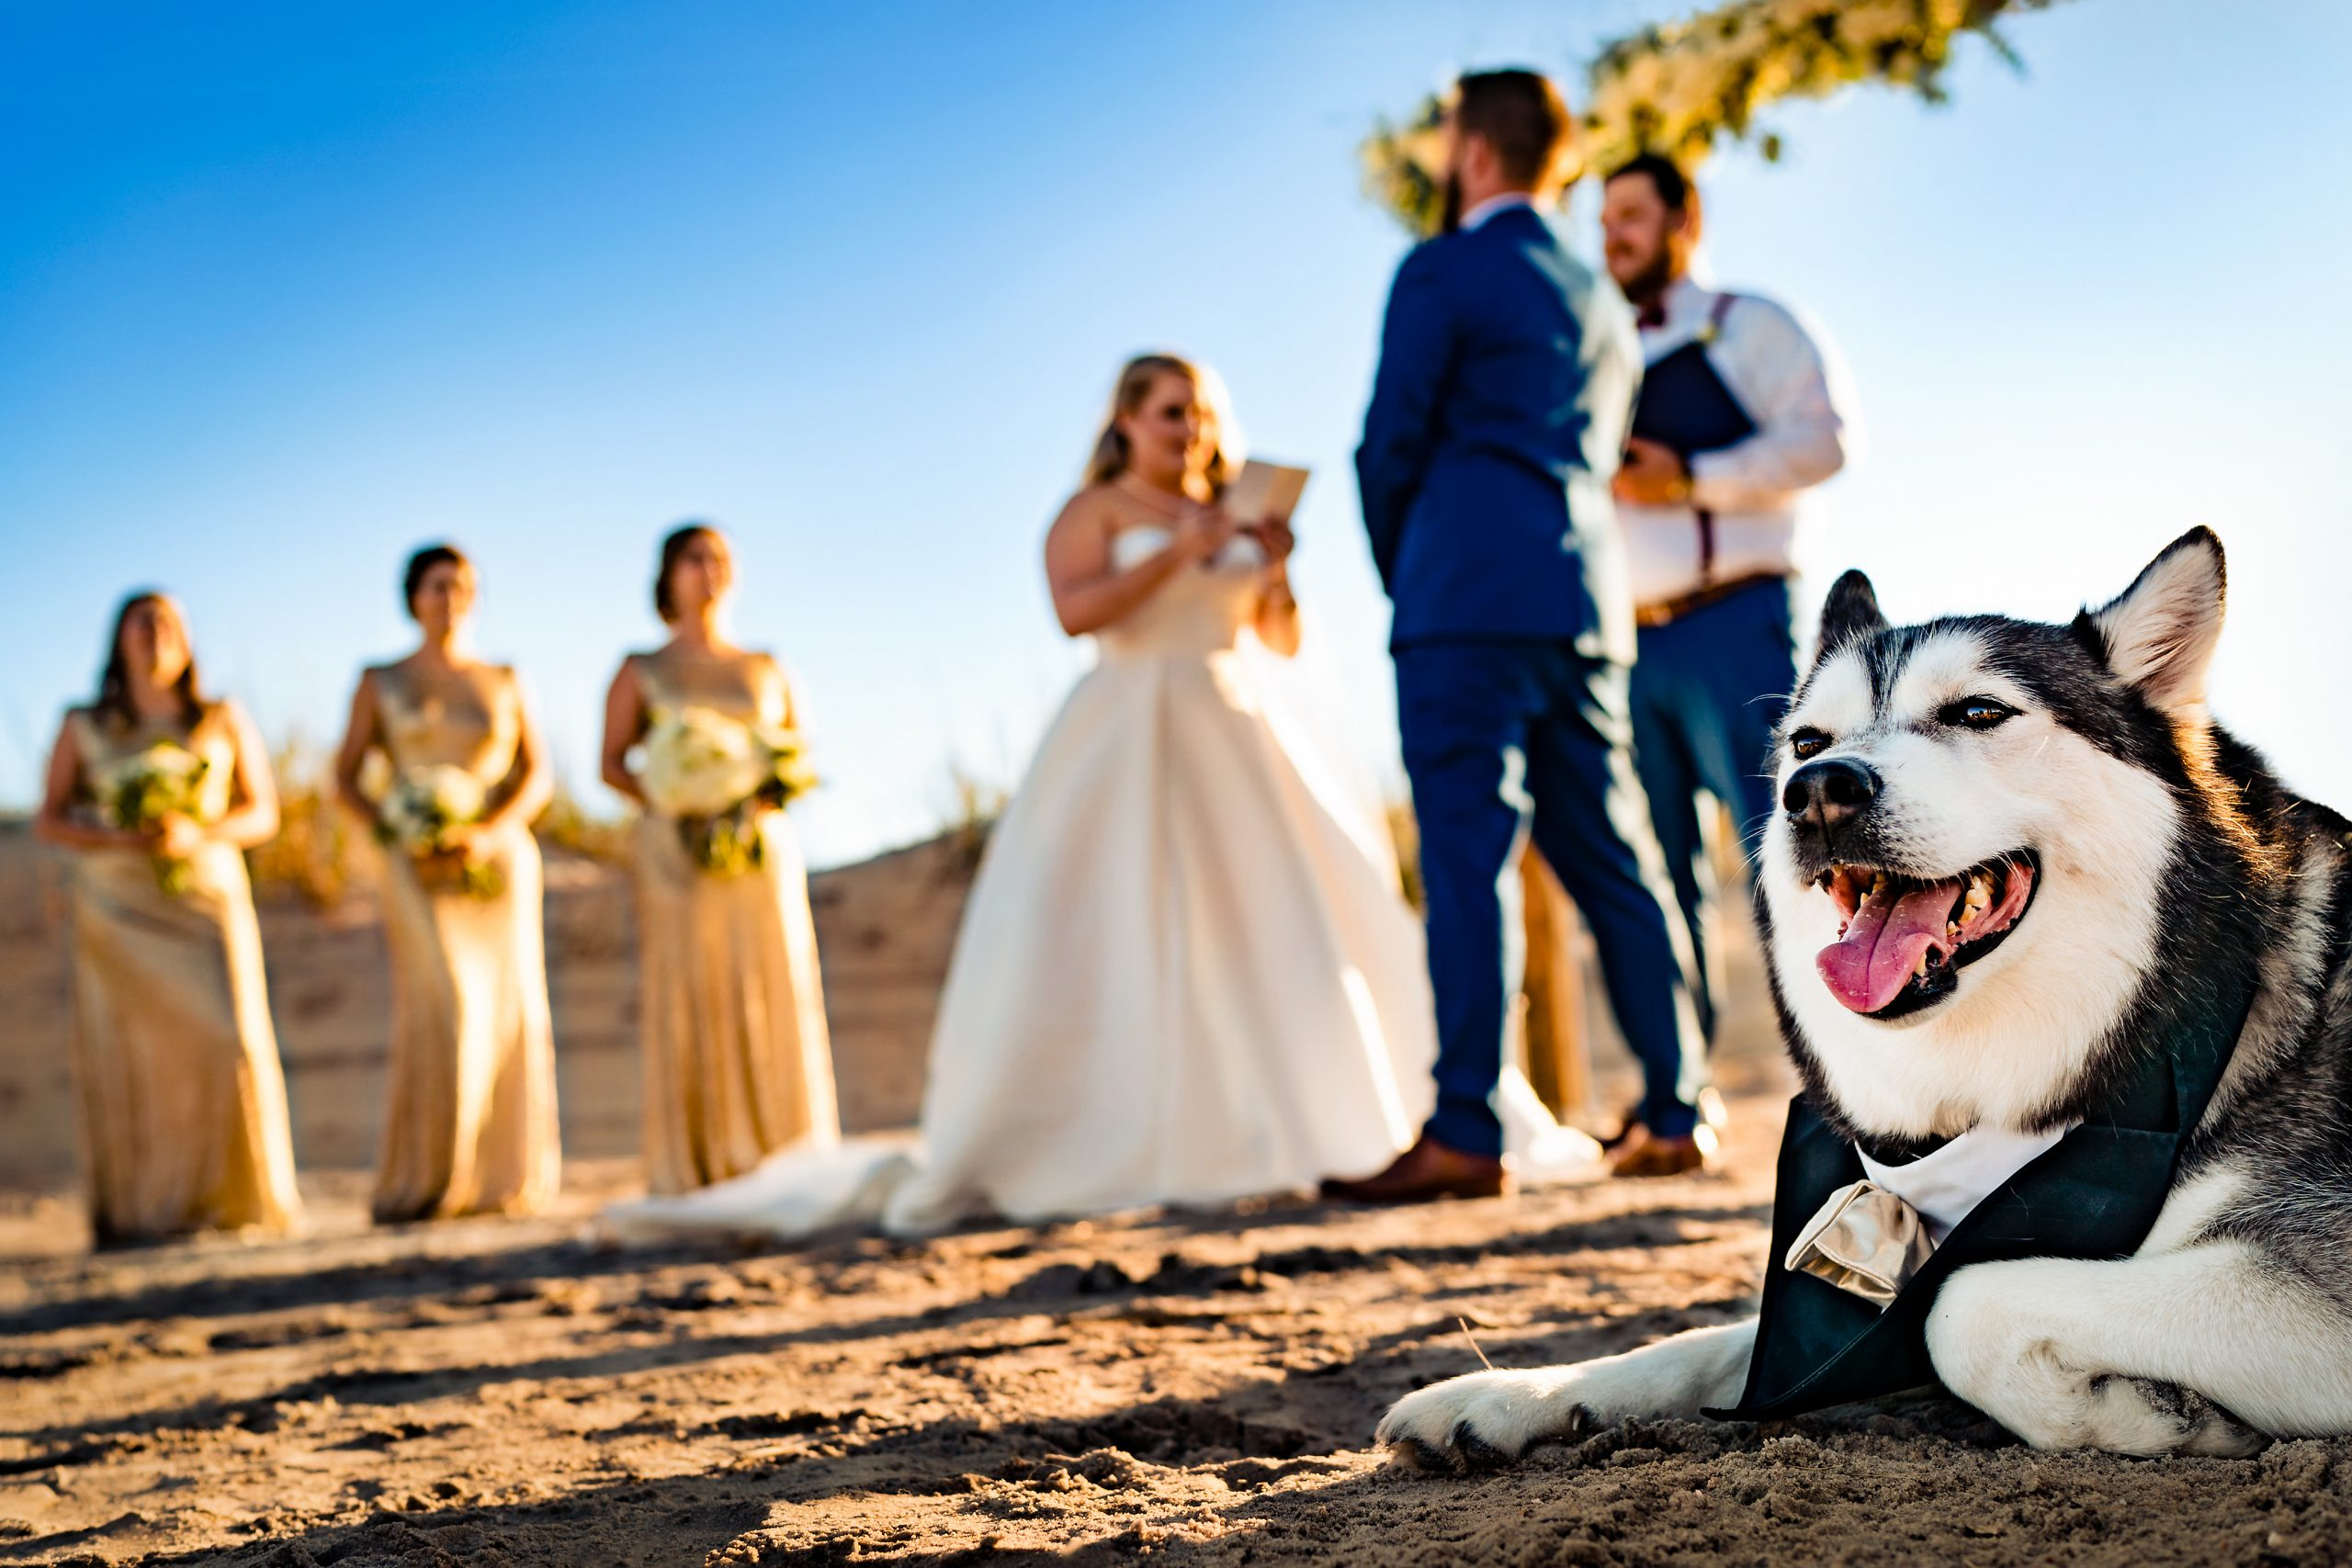 A happy, well-dressed dog enjoys the exchanging of vows at the wedding ceremony.